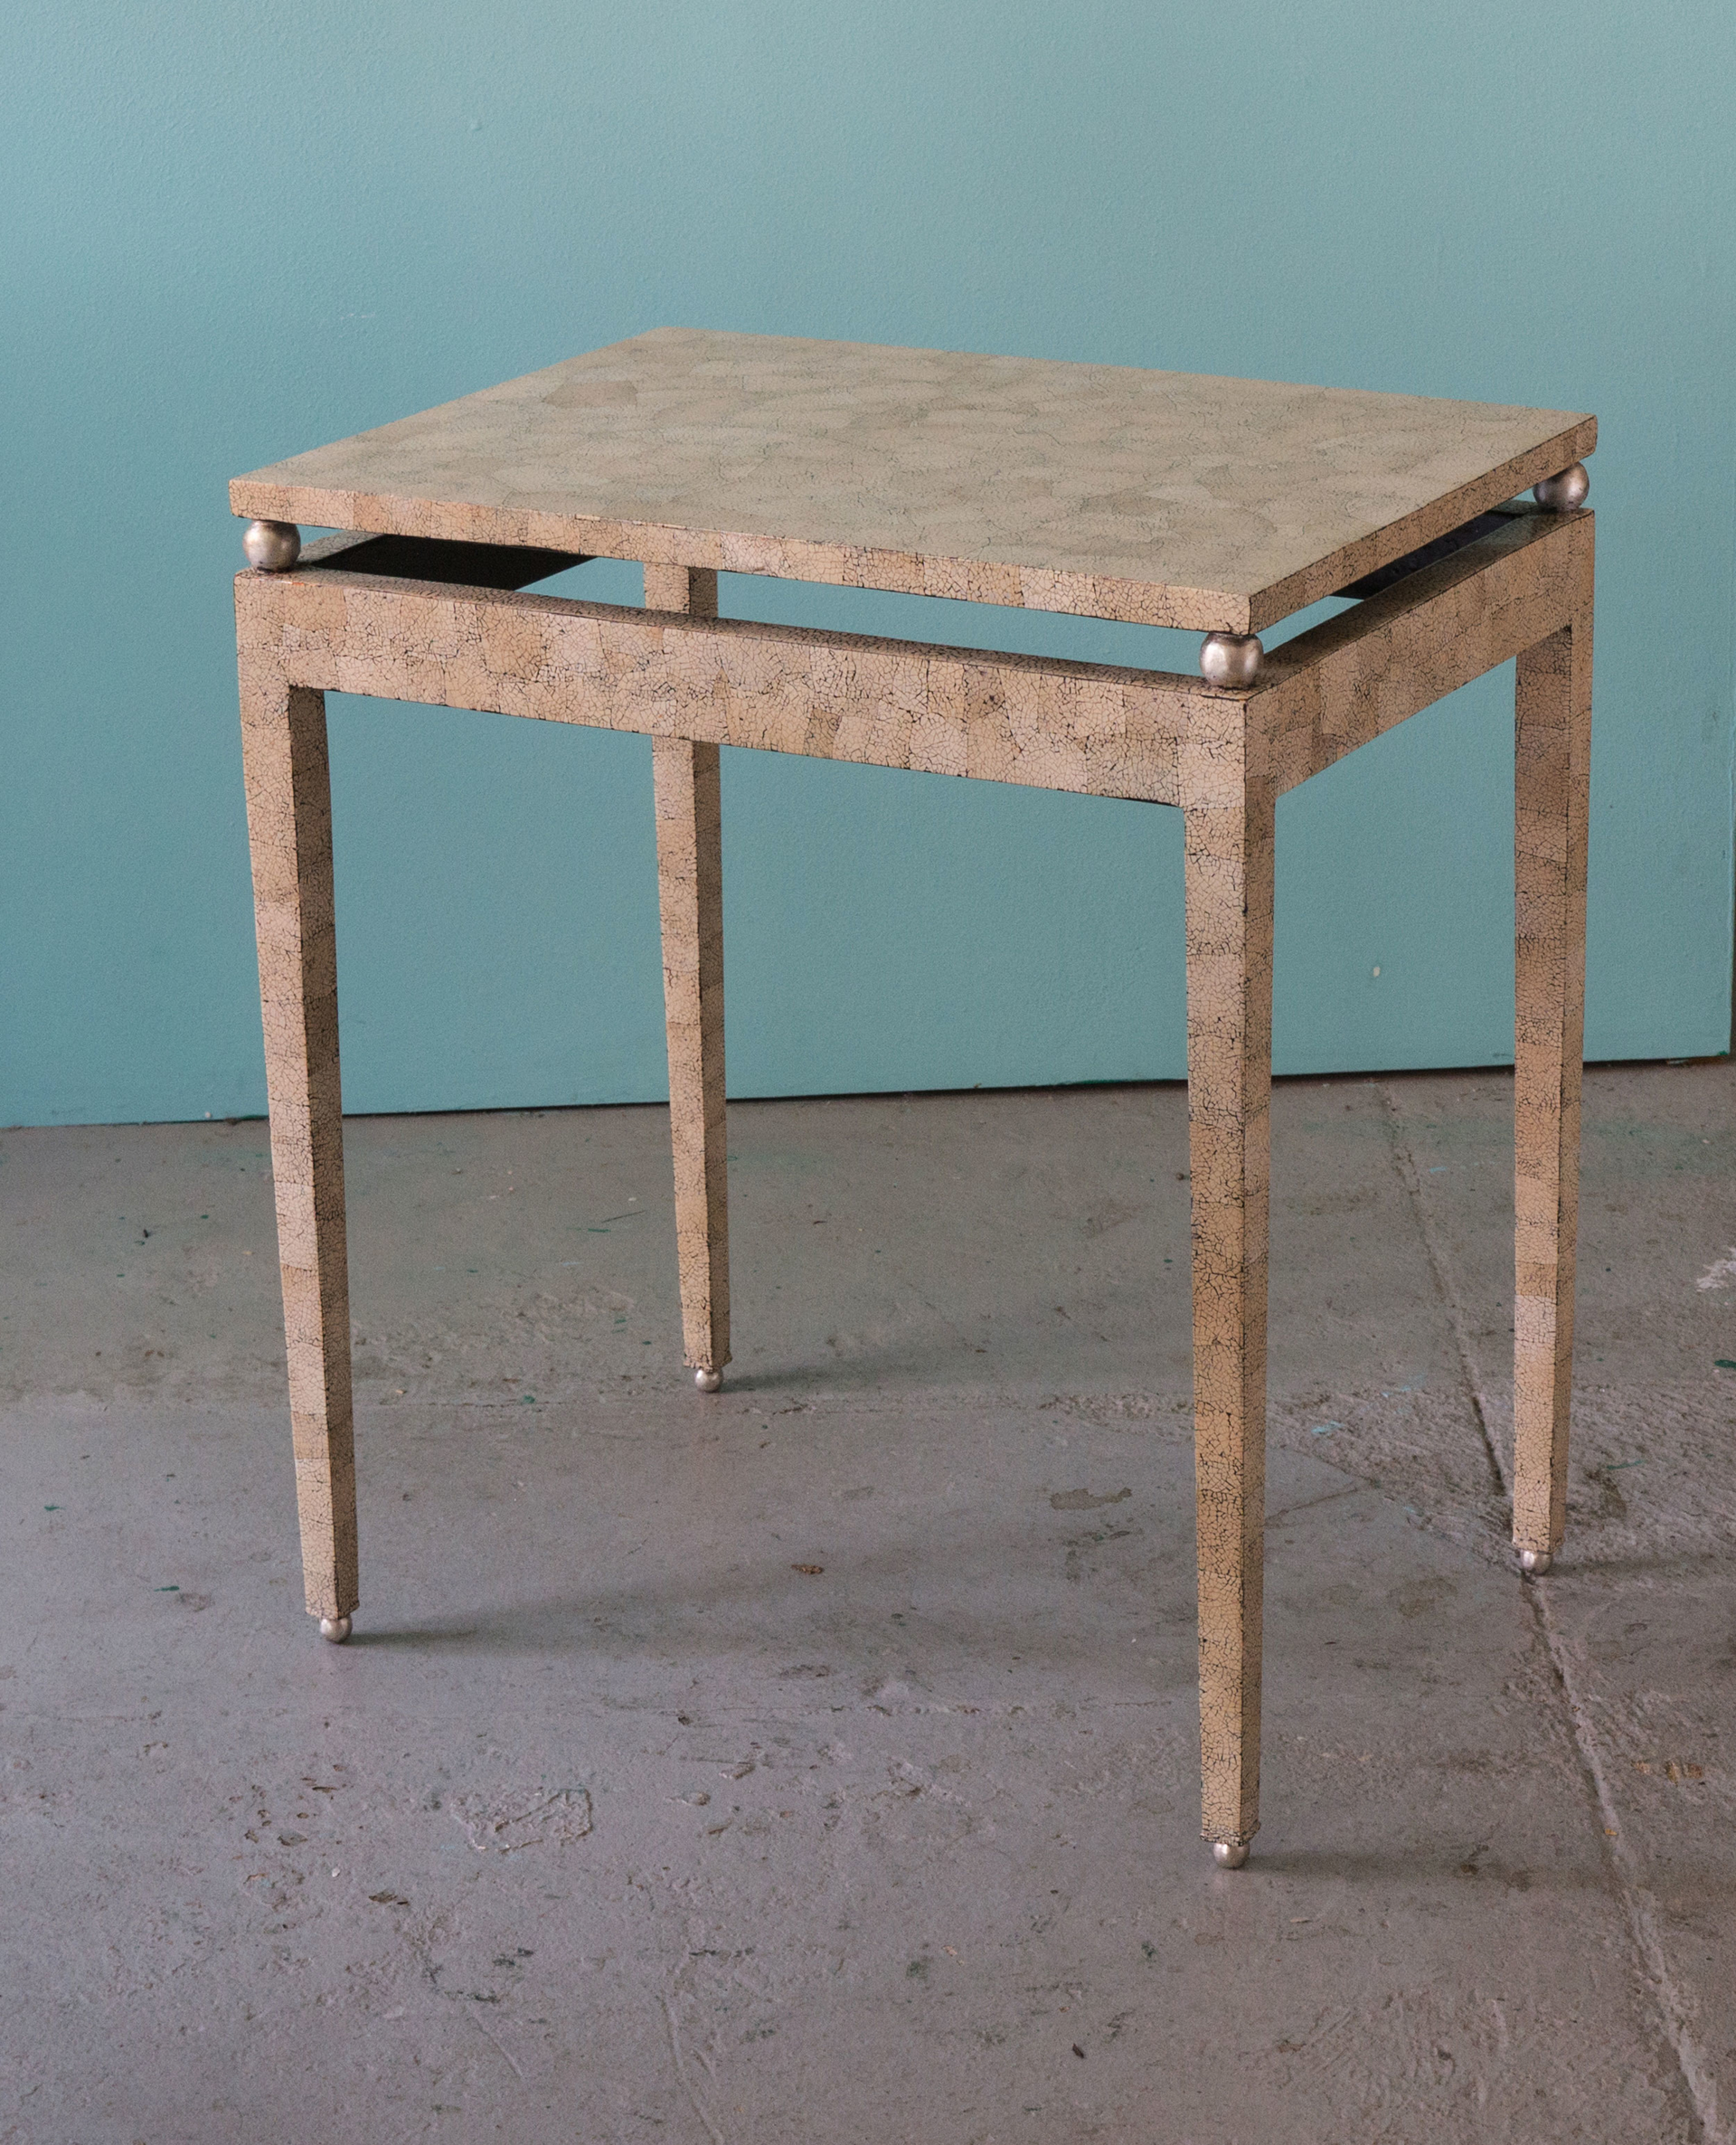 Eggshell table by Thierry Voeltzel